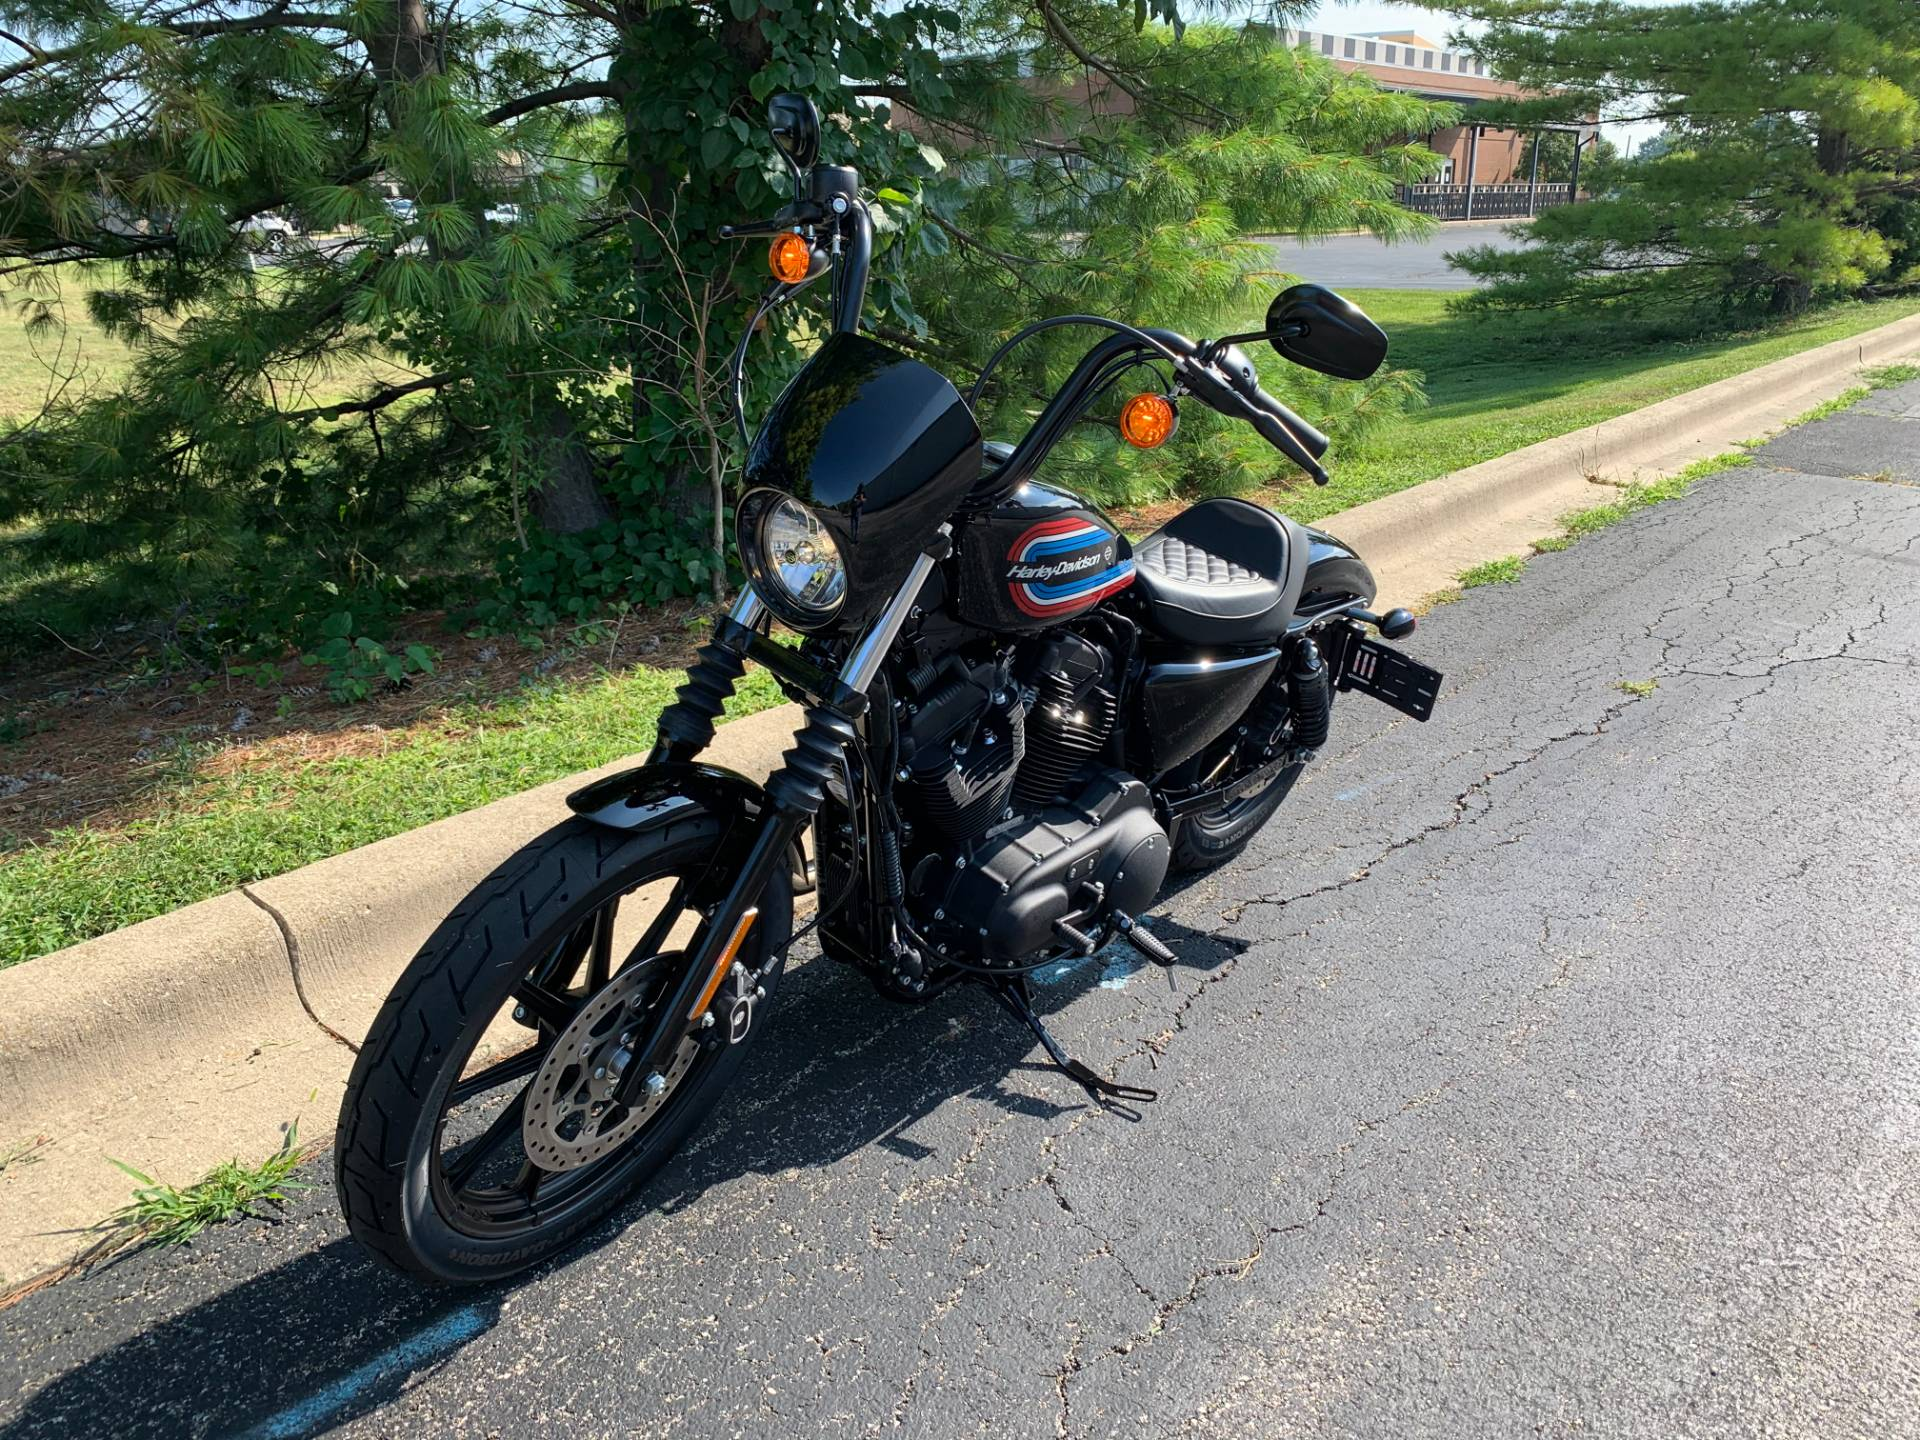 2020 Harley-Davidson Iron 1200 in Forsyth, Illinois - Photo 5